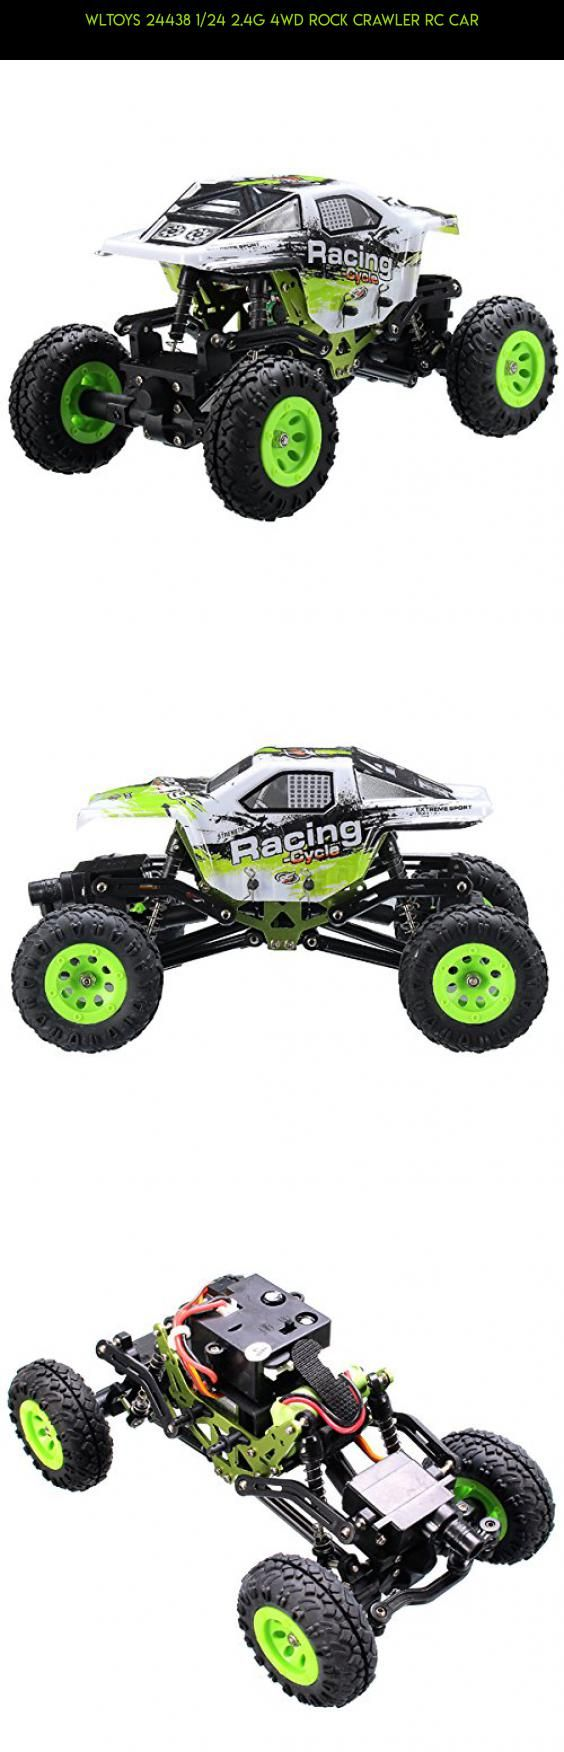 WLtoys 24438 1/24 2.4G 4WD Rock Crawler RC Car #parts #fpv #24438 #gadgets #wltoys #products #camera #plans #tech #kit #technology #shopping #racing #drone